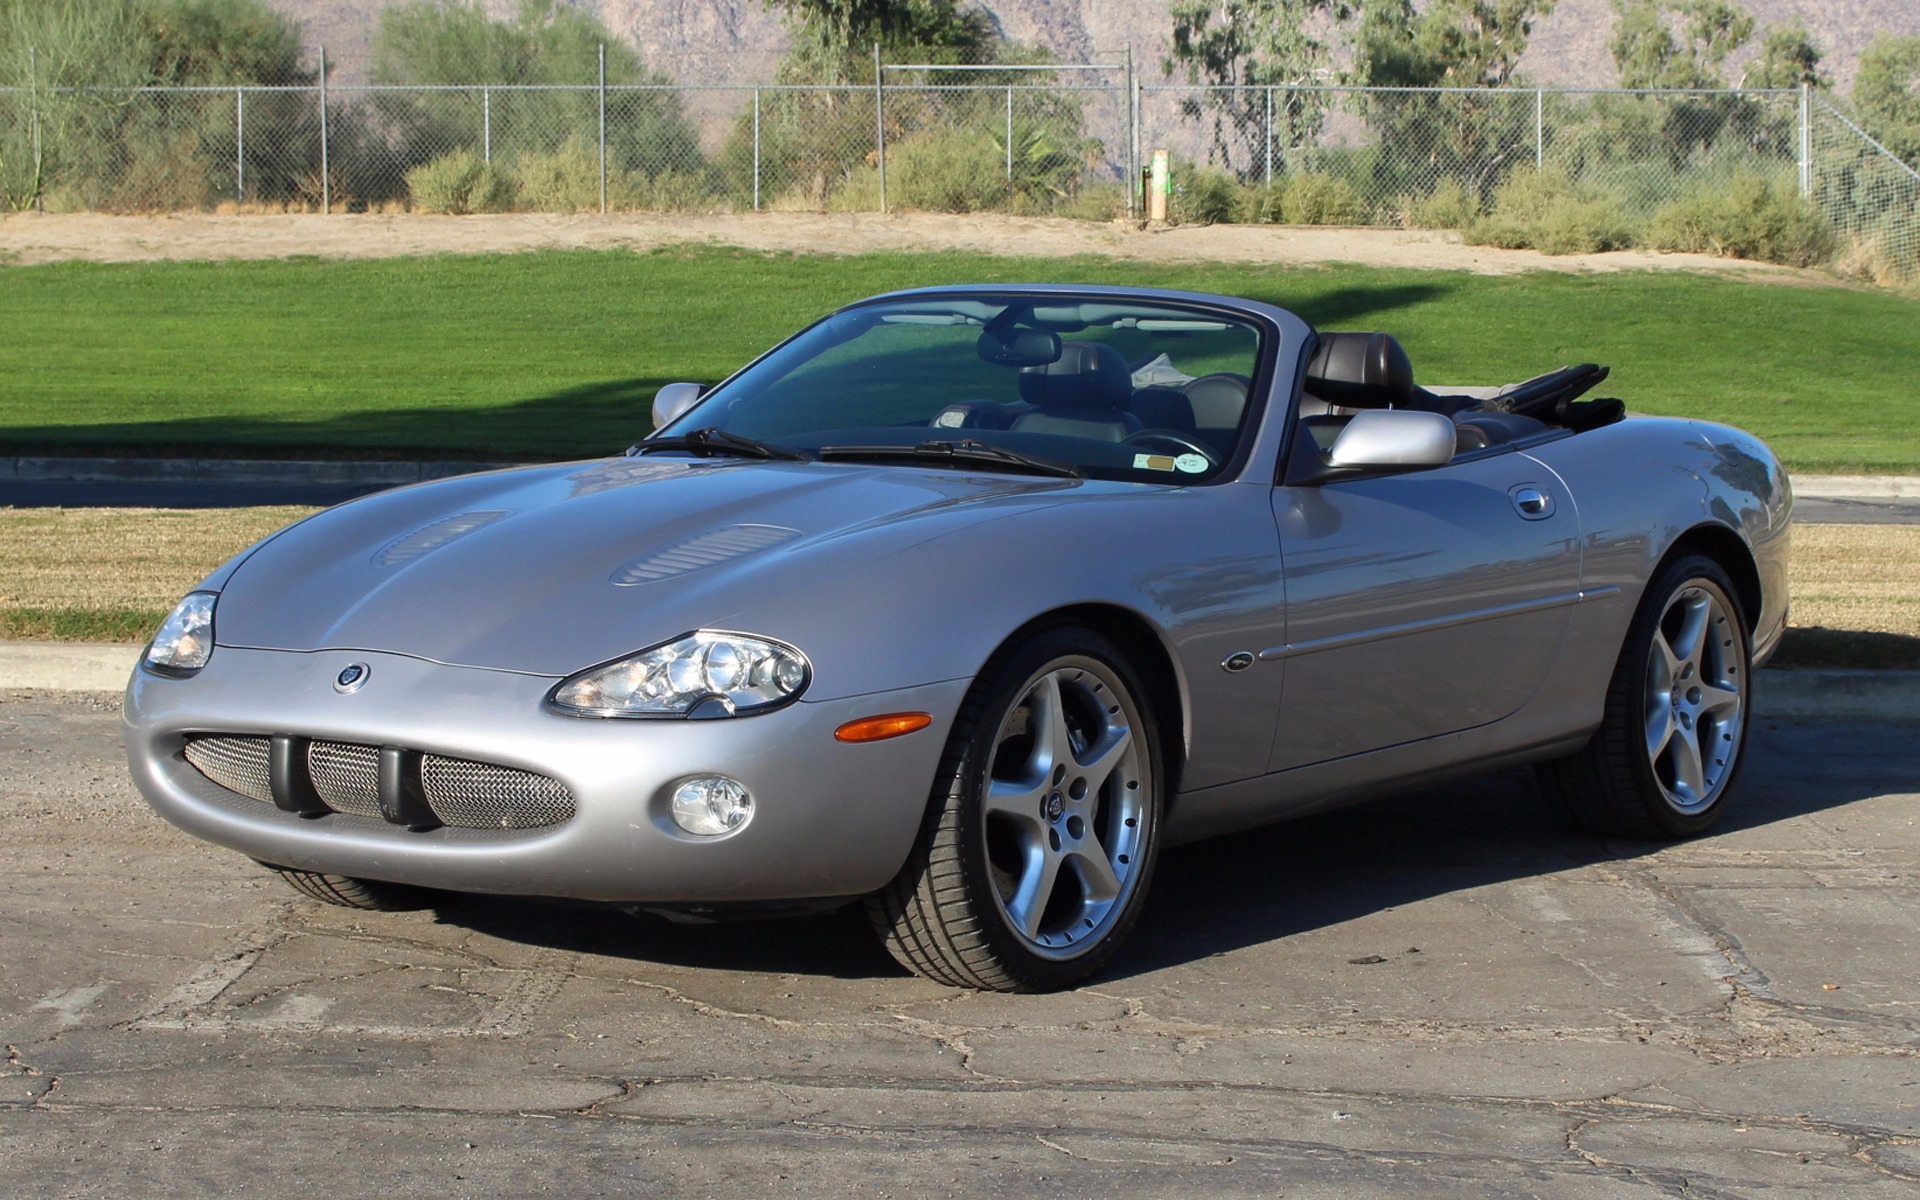 xkr convertible palm jaguar used silverstone stock sale c near springs htm for l